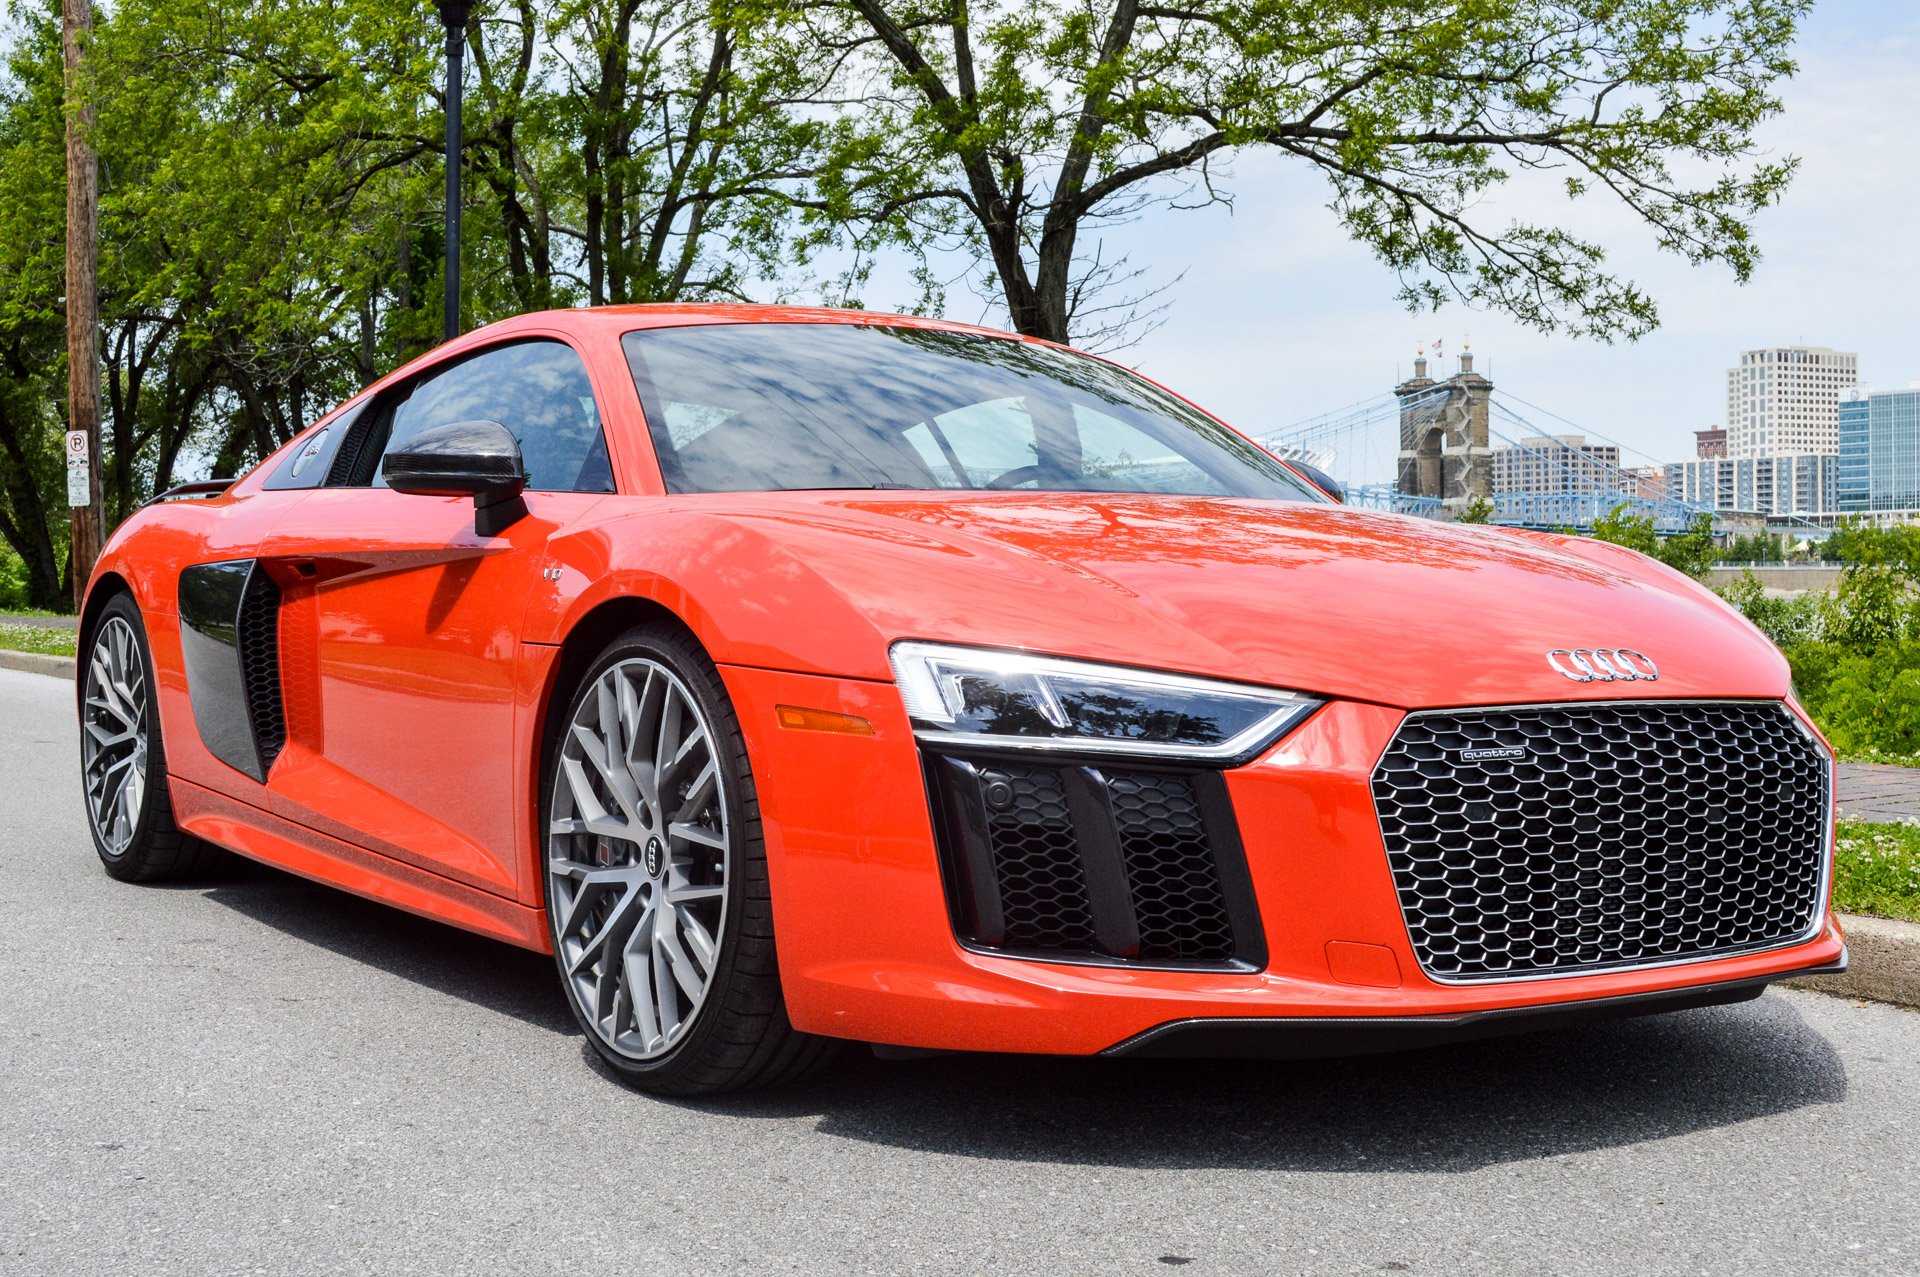 Review: 2017 Audi R8 V10 Plus